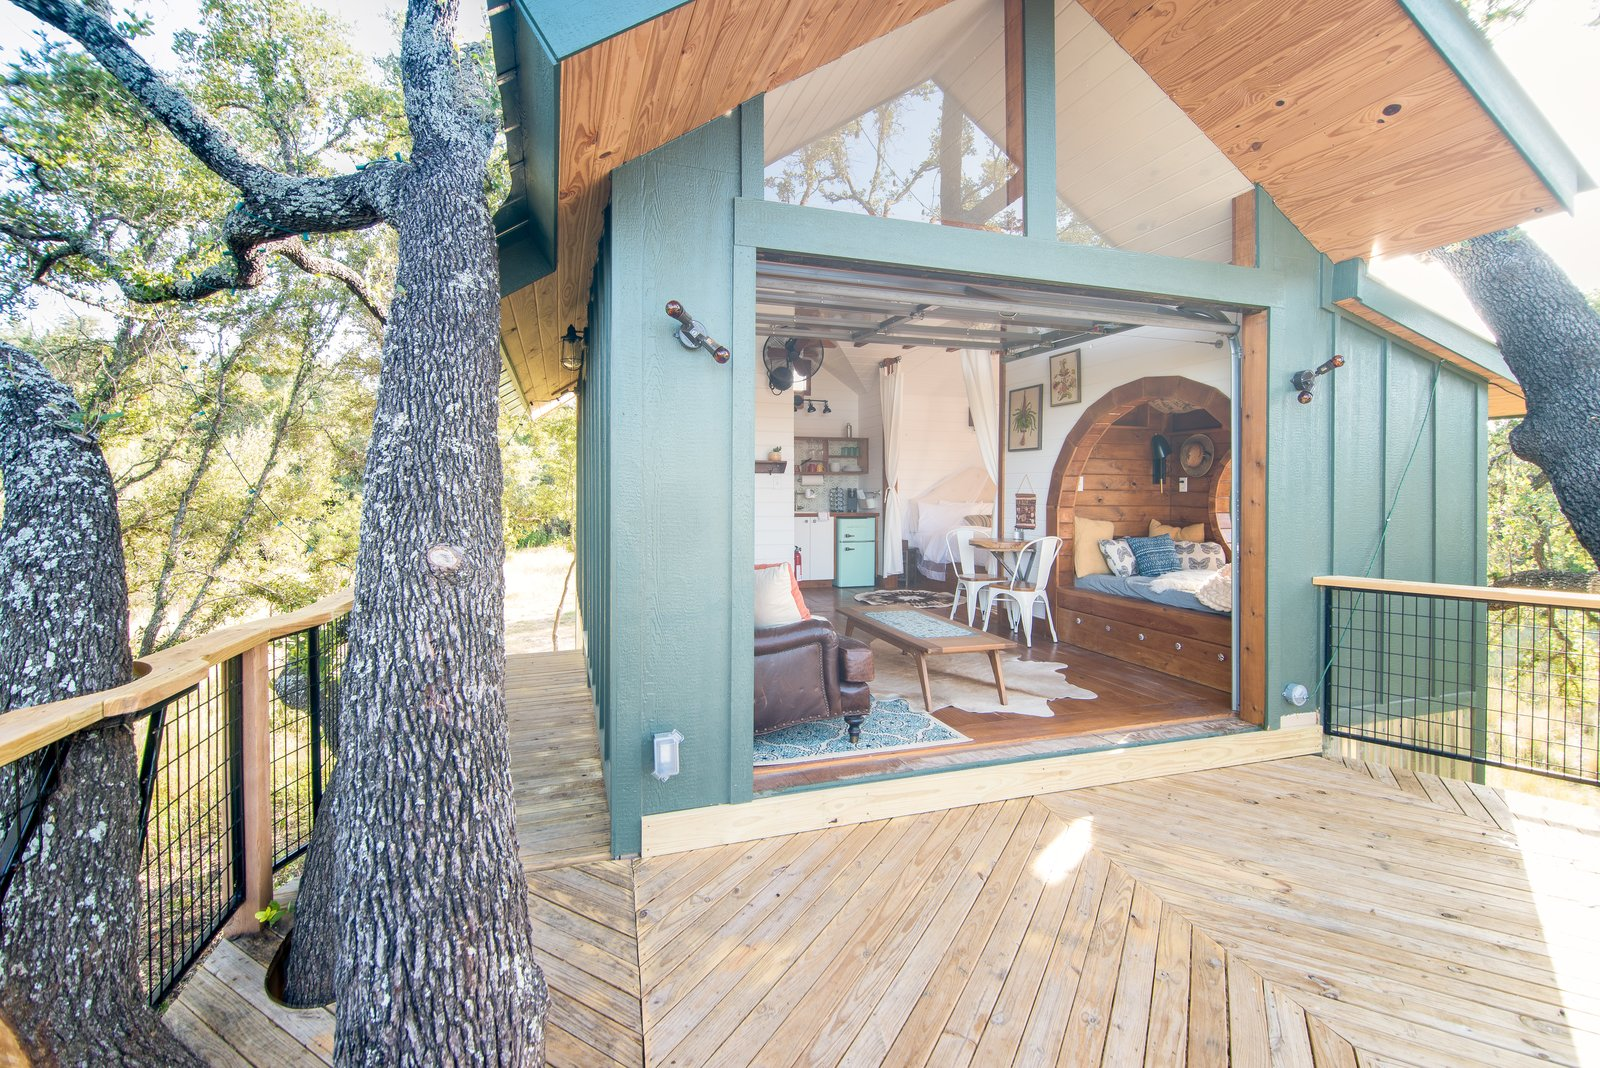 Exterior, Treehouse Building Type, Wood Siding Material, and Gable RoofLine The Live Oak is one of three playful tree houses available to rent at HoneyTree Farm in Fredericksburg, Texas.  Photo 1 of 10 in Book a Stay in This Whimsical Trio of Tiny Tree Houses